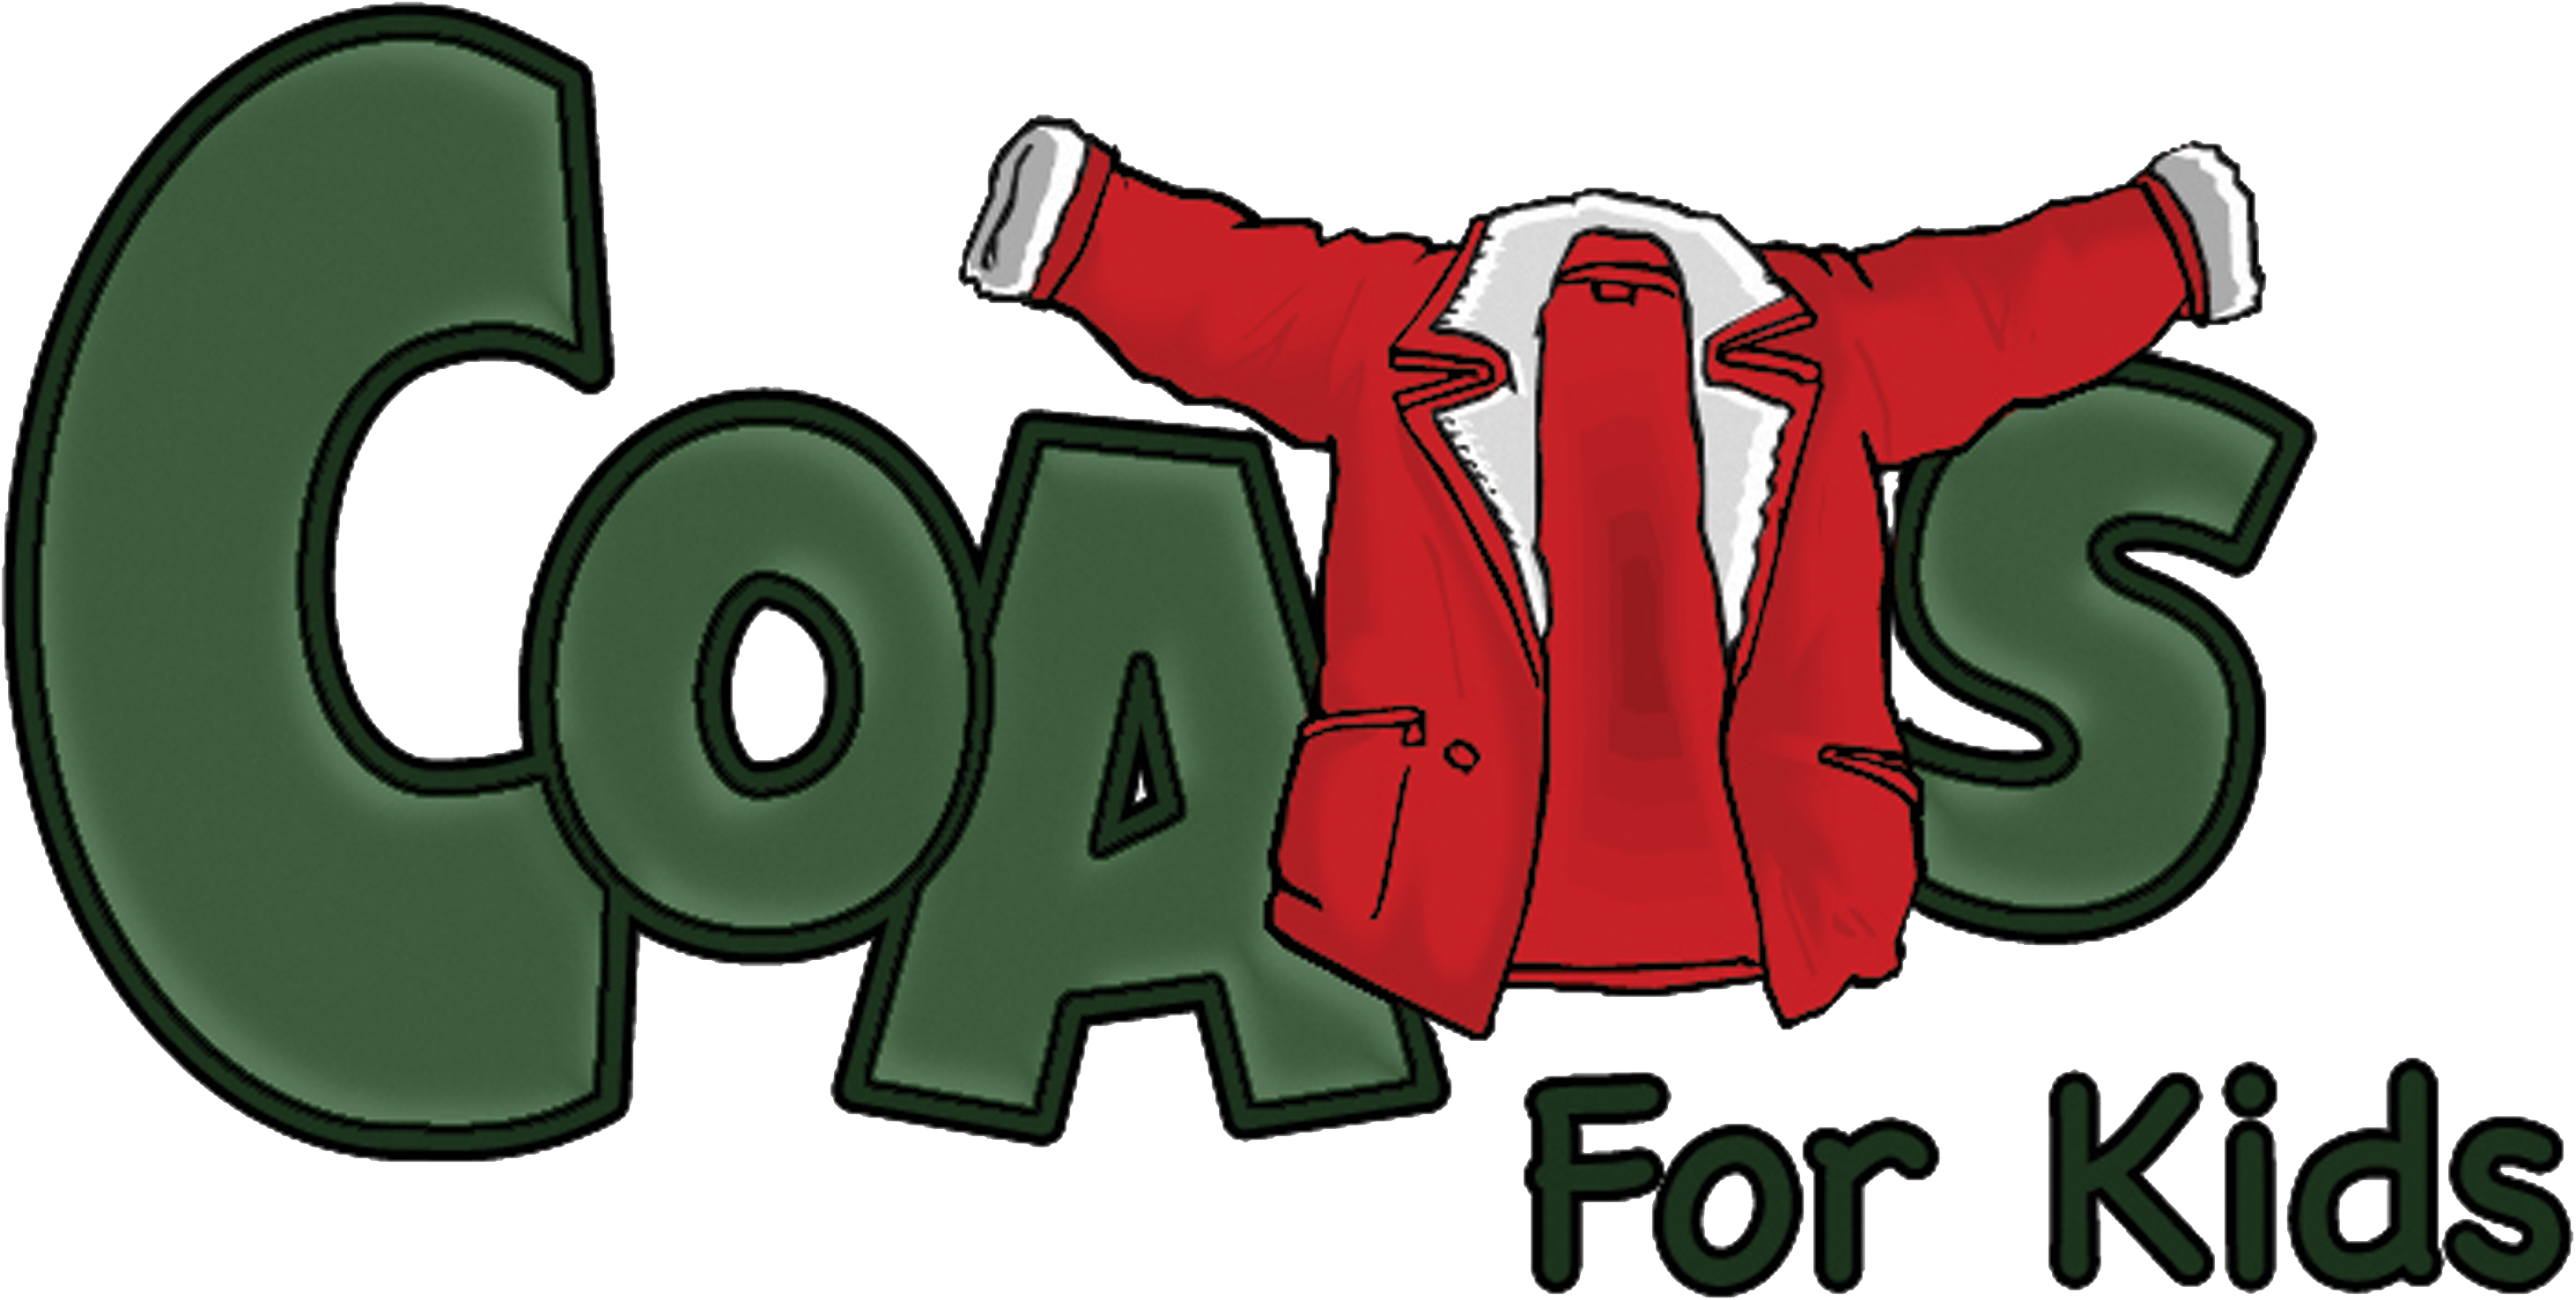 Wolf Furniture Coats For Kids Campaign Wearecentralpa Wtaj